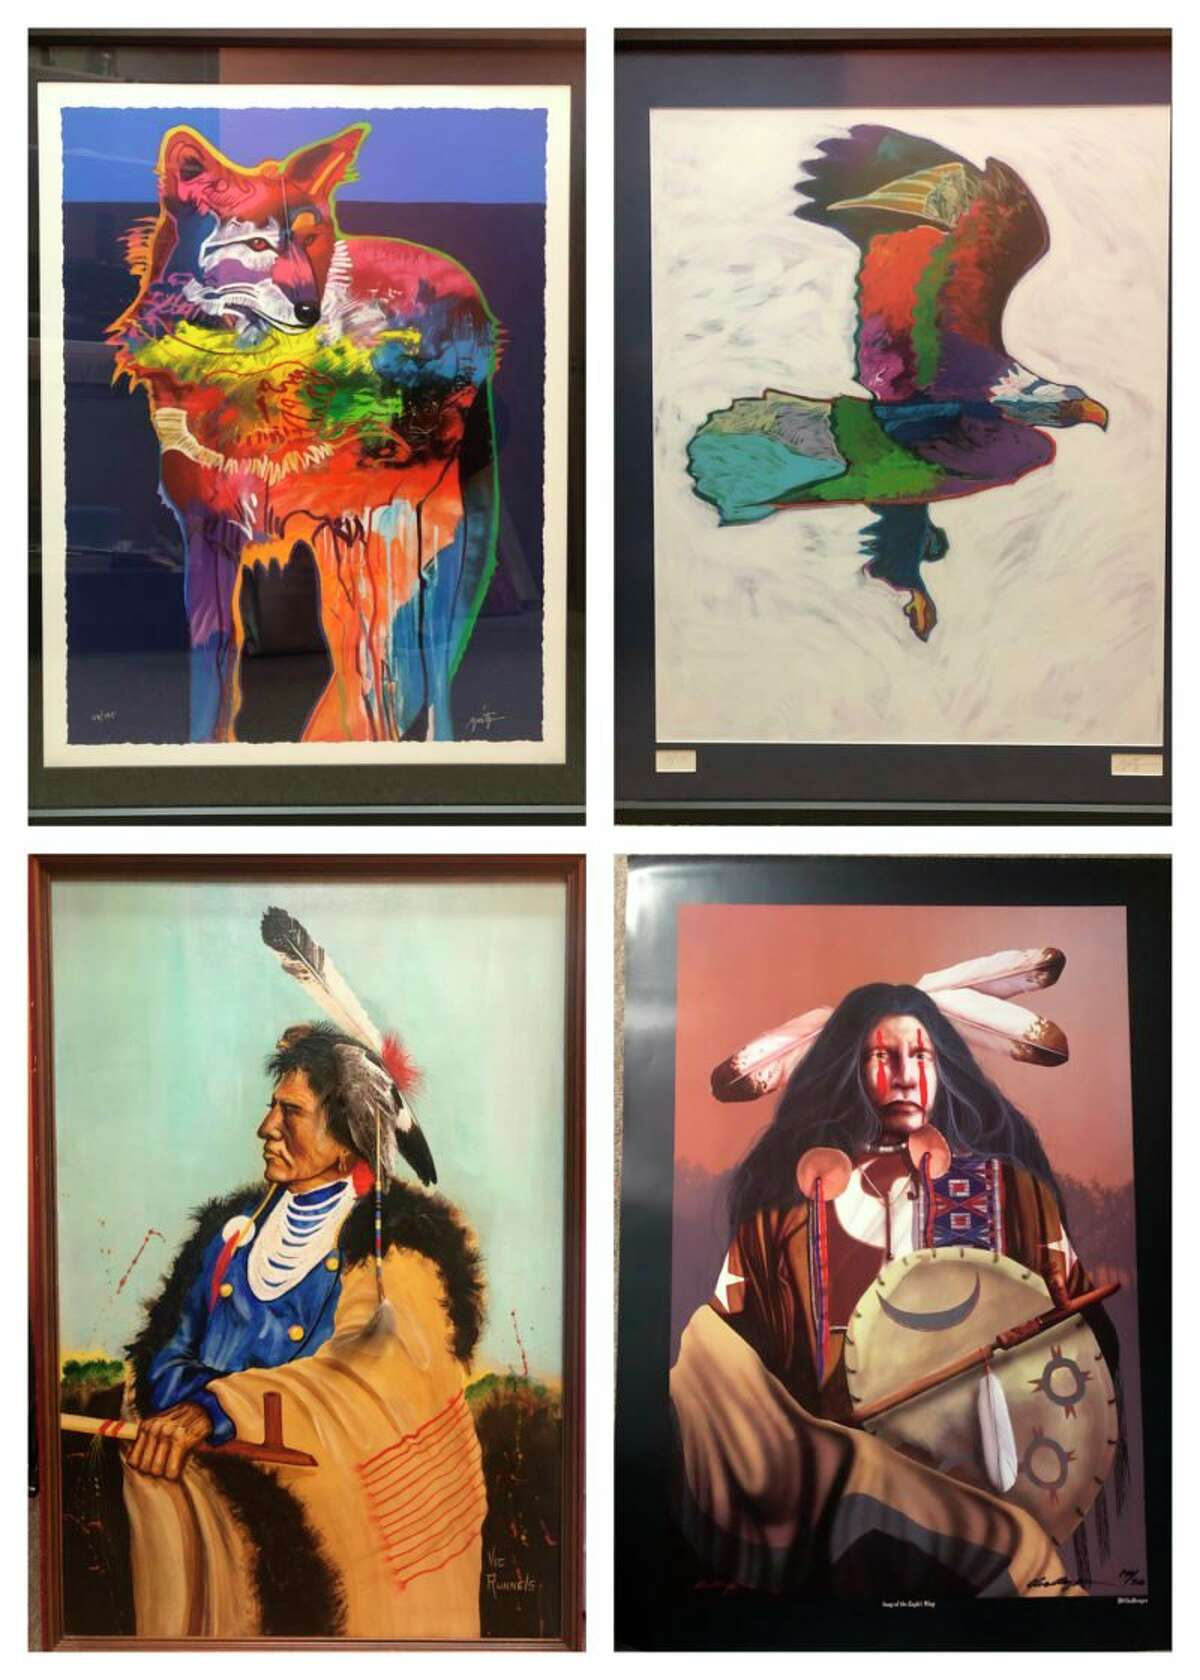 The Artworks exhibitfeaturesartists Paul Collins, Leonardo Nierman, John Nieto, Vic Runnels, and J.D. Challenger and comes from the collection of Charmaine Lucas and runs through August. (Courtesy photo)